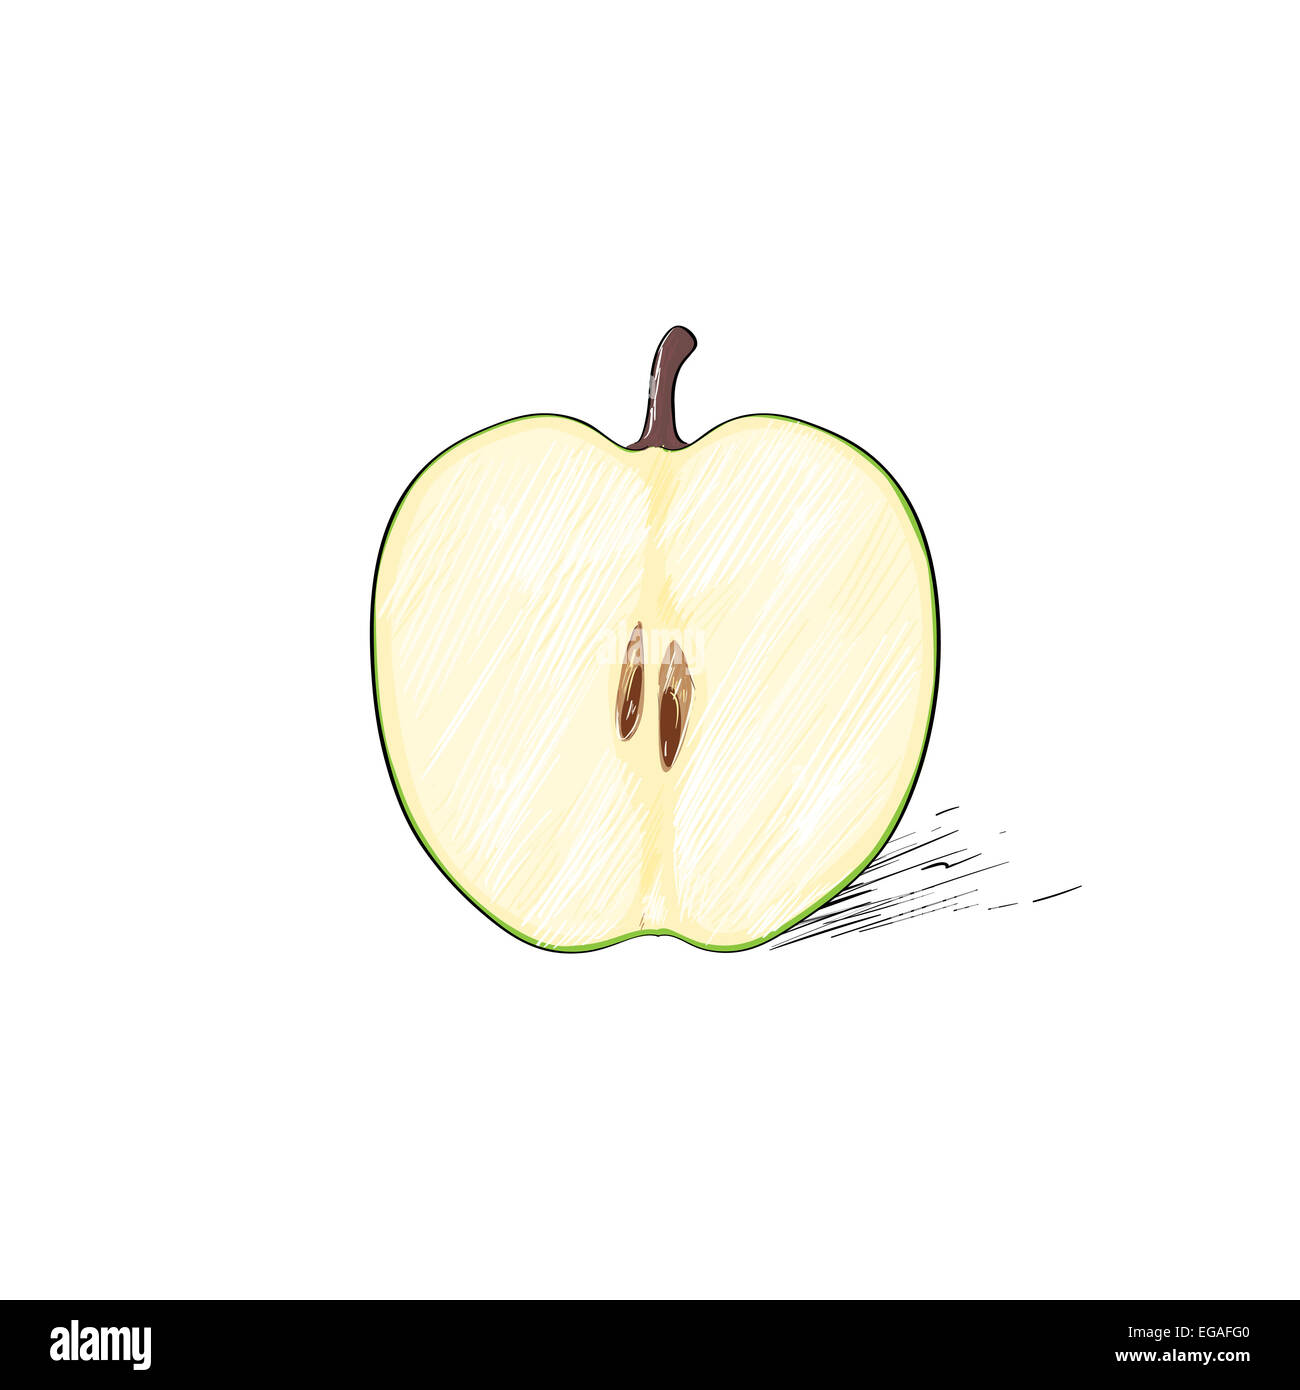 Green Cut Half Apple Sketch Draw Isolated Over White Stock Photo